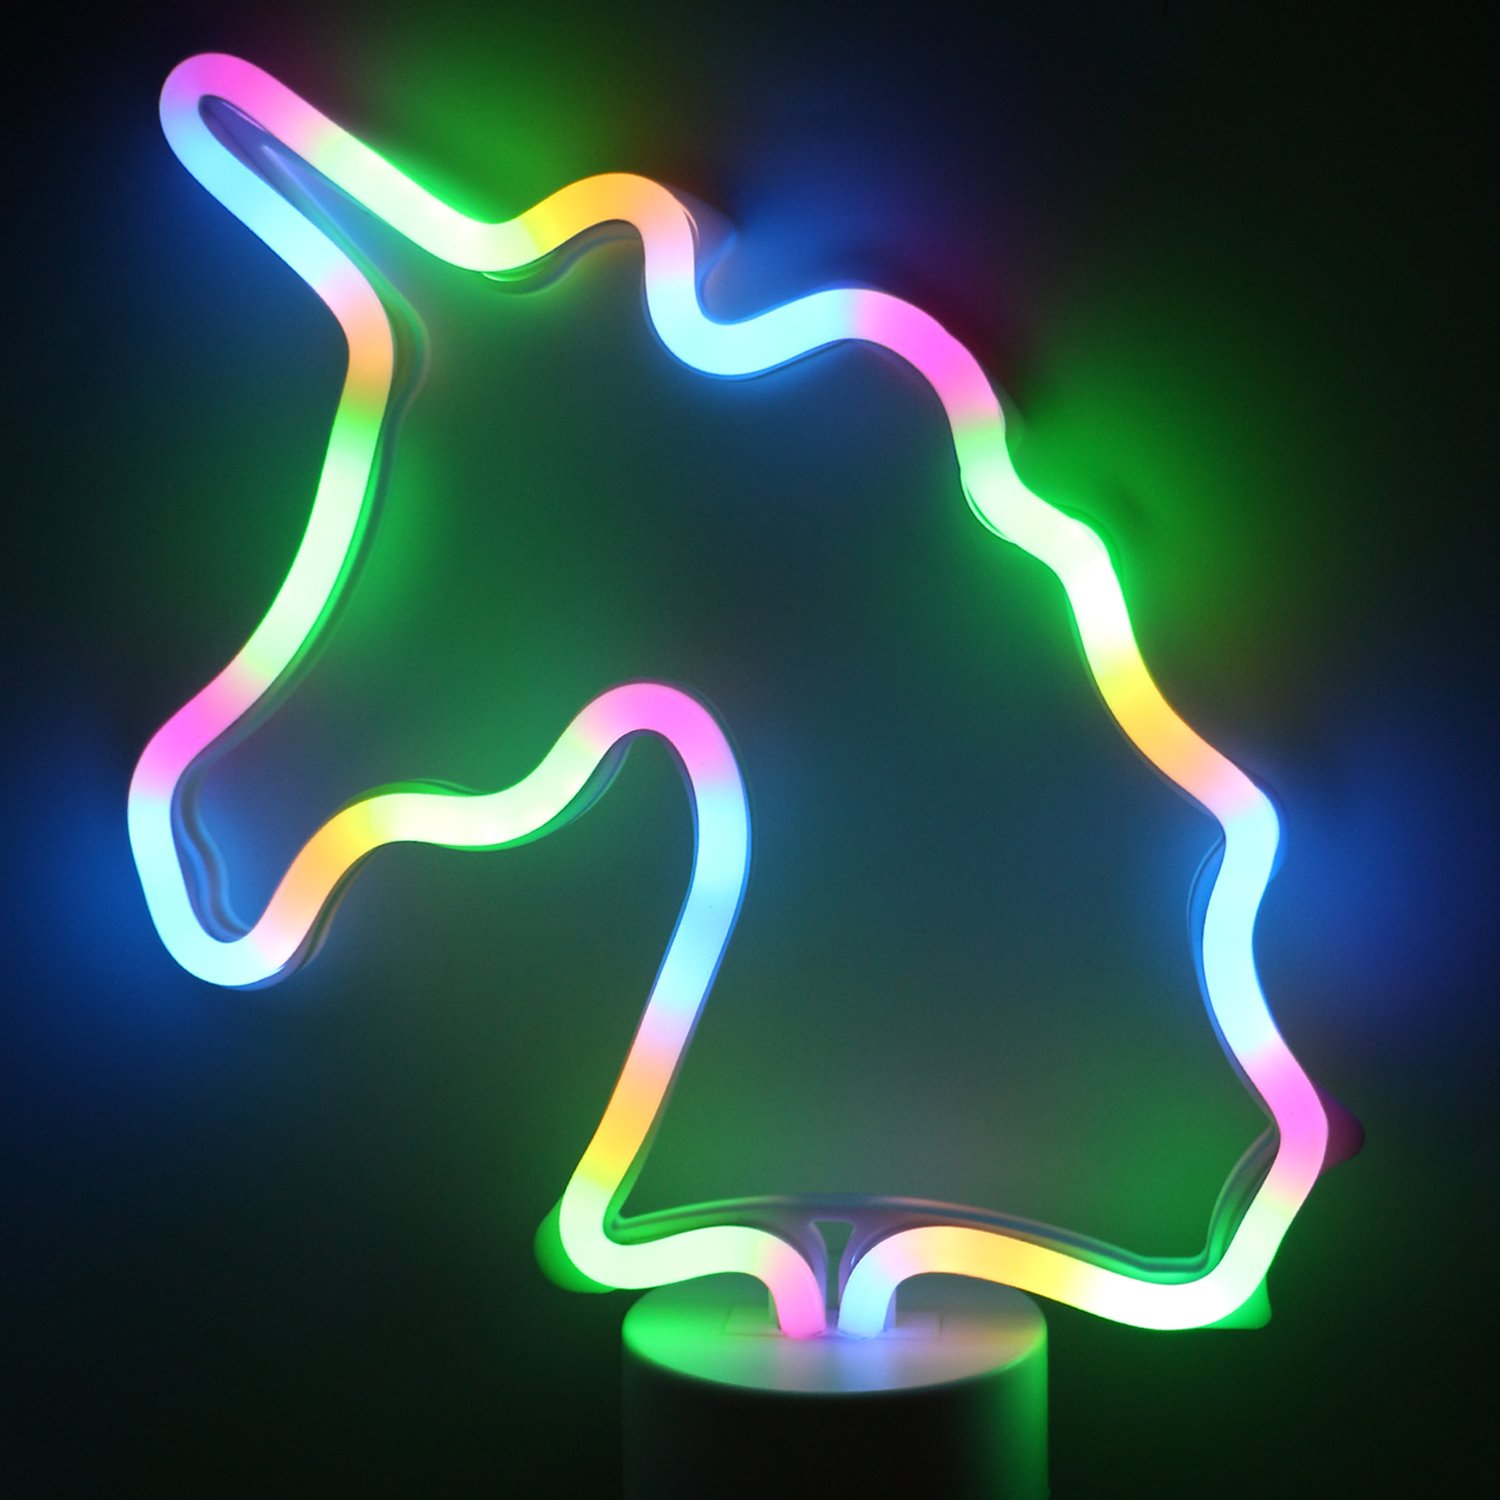 LED Unicorn Neon Light Signs - Room Decor Colour Unicorn Lights with Pedestal Night Lights Battery Operated Bedside and Table Lamps Neon Signs for Home Decoration